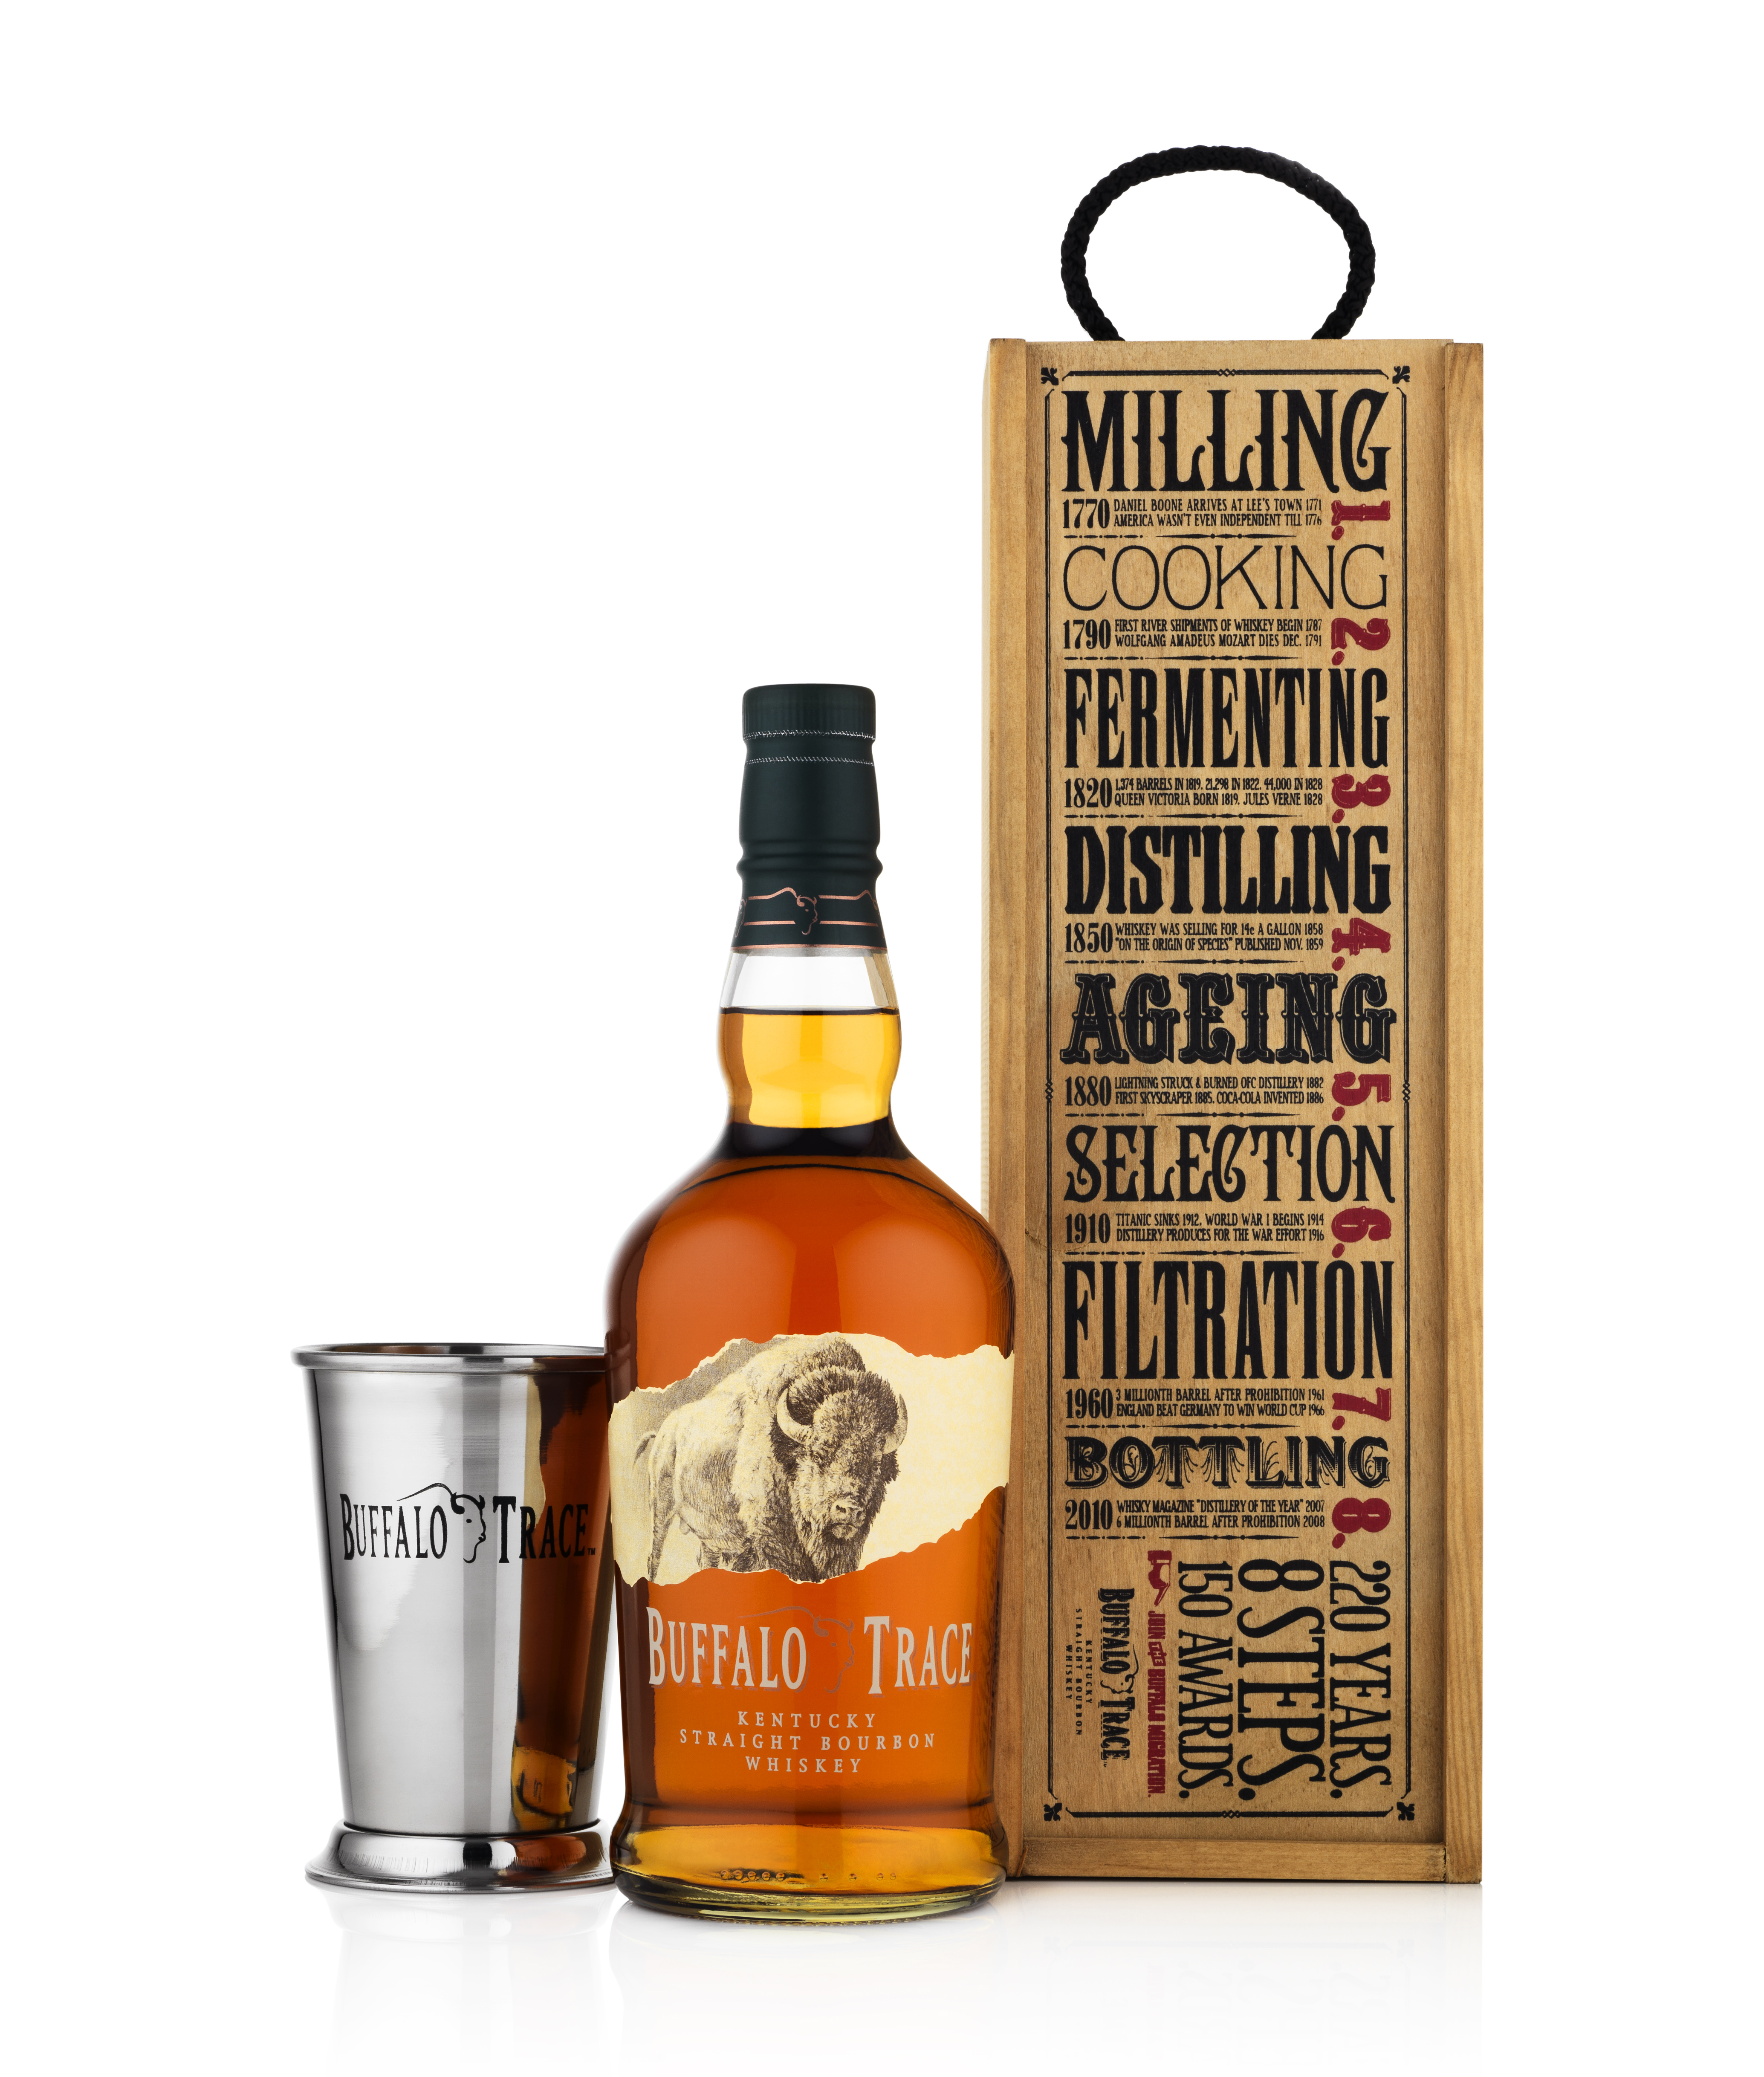 Limited Edition Gift Box From Buffalo Trace Bourbon This